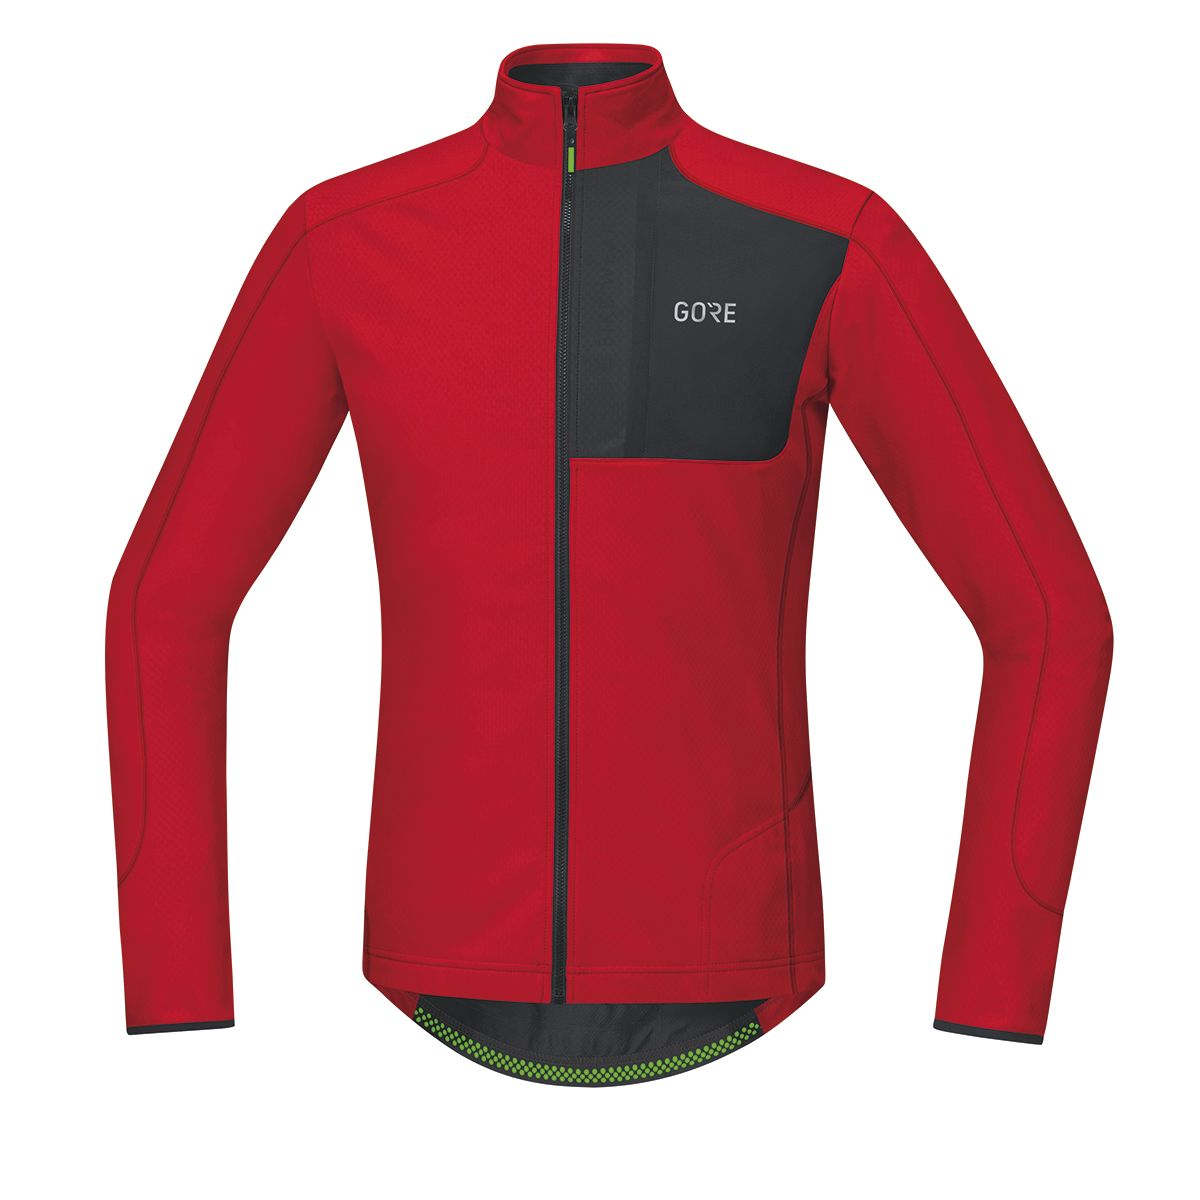 C5 THERMO TRAIL JERSEY long sleeve jersey for men